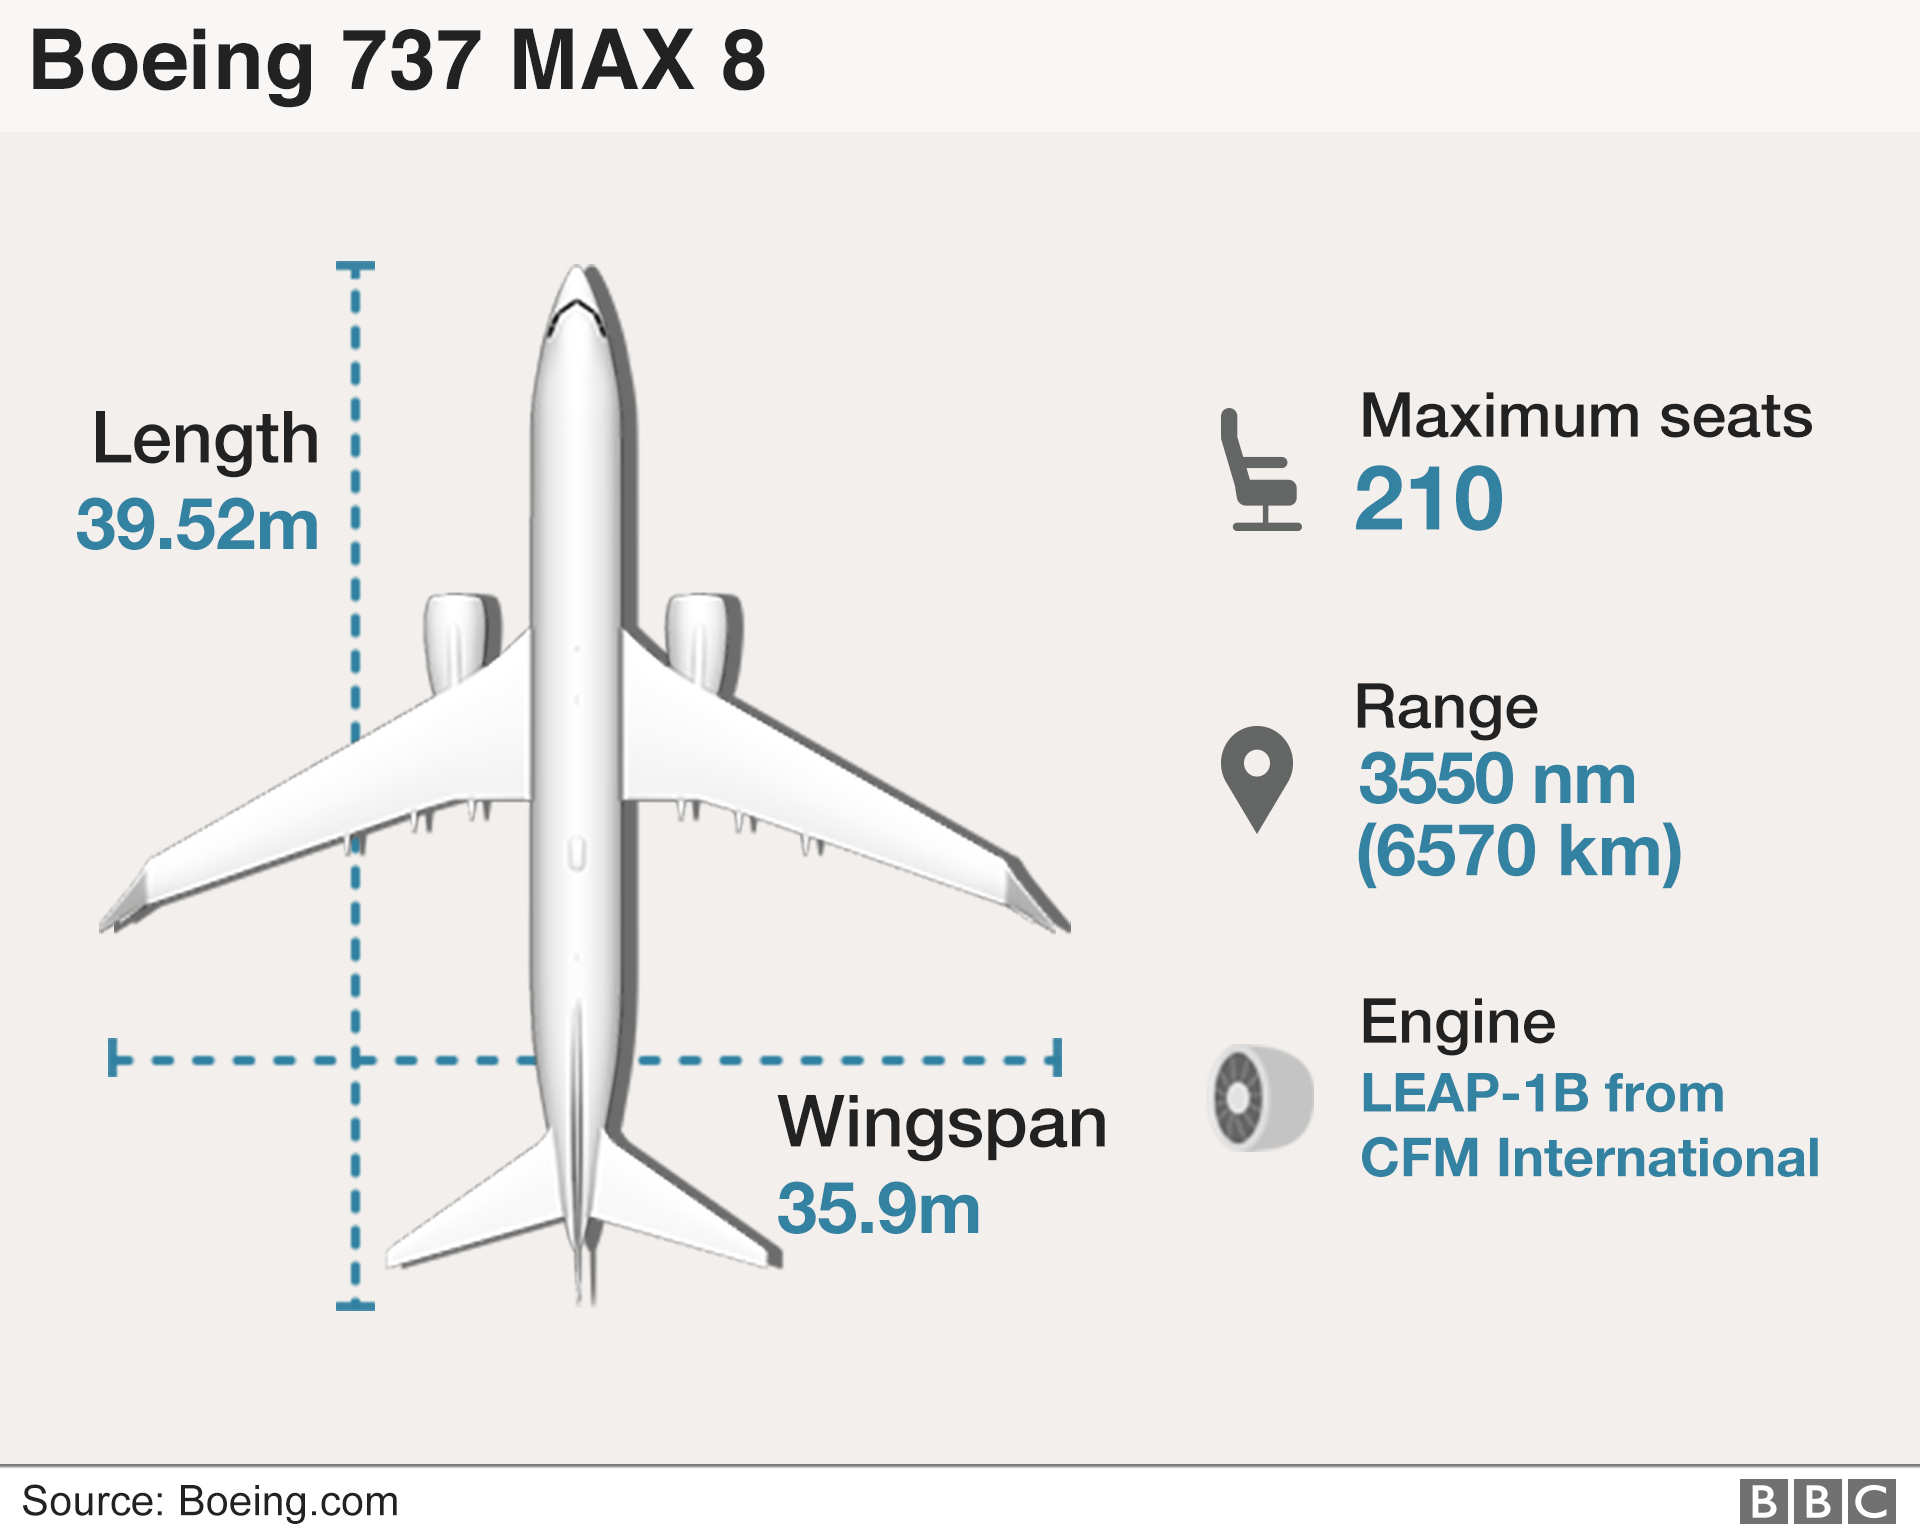 US FAA says Boeing 737 Max 8 is airworthy